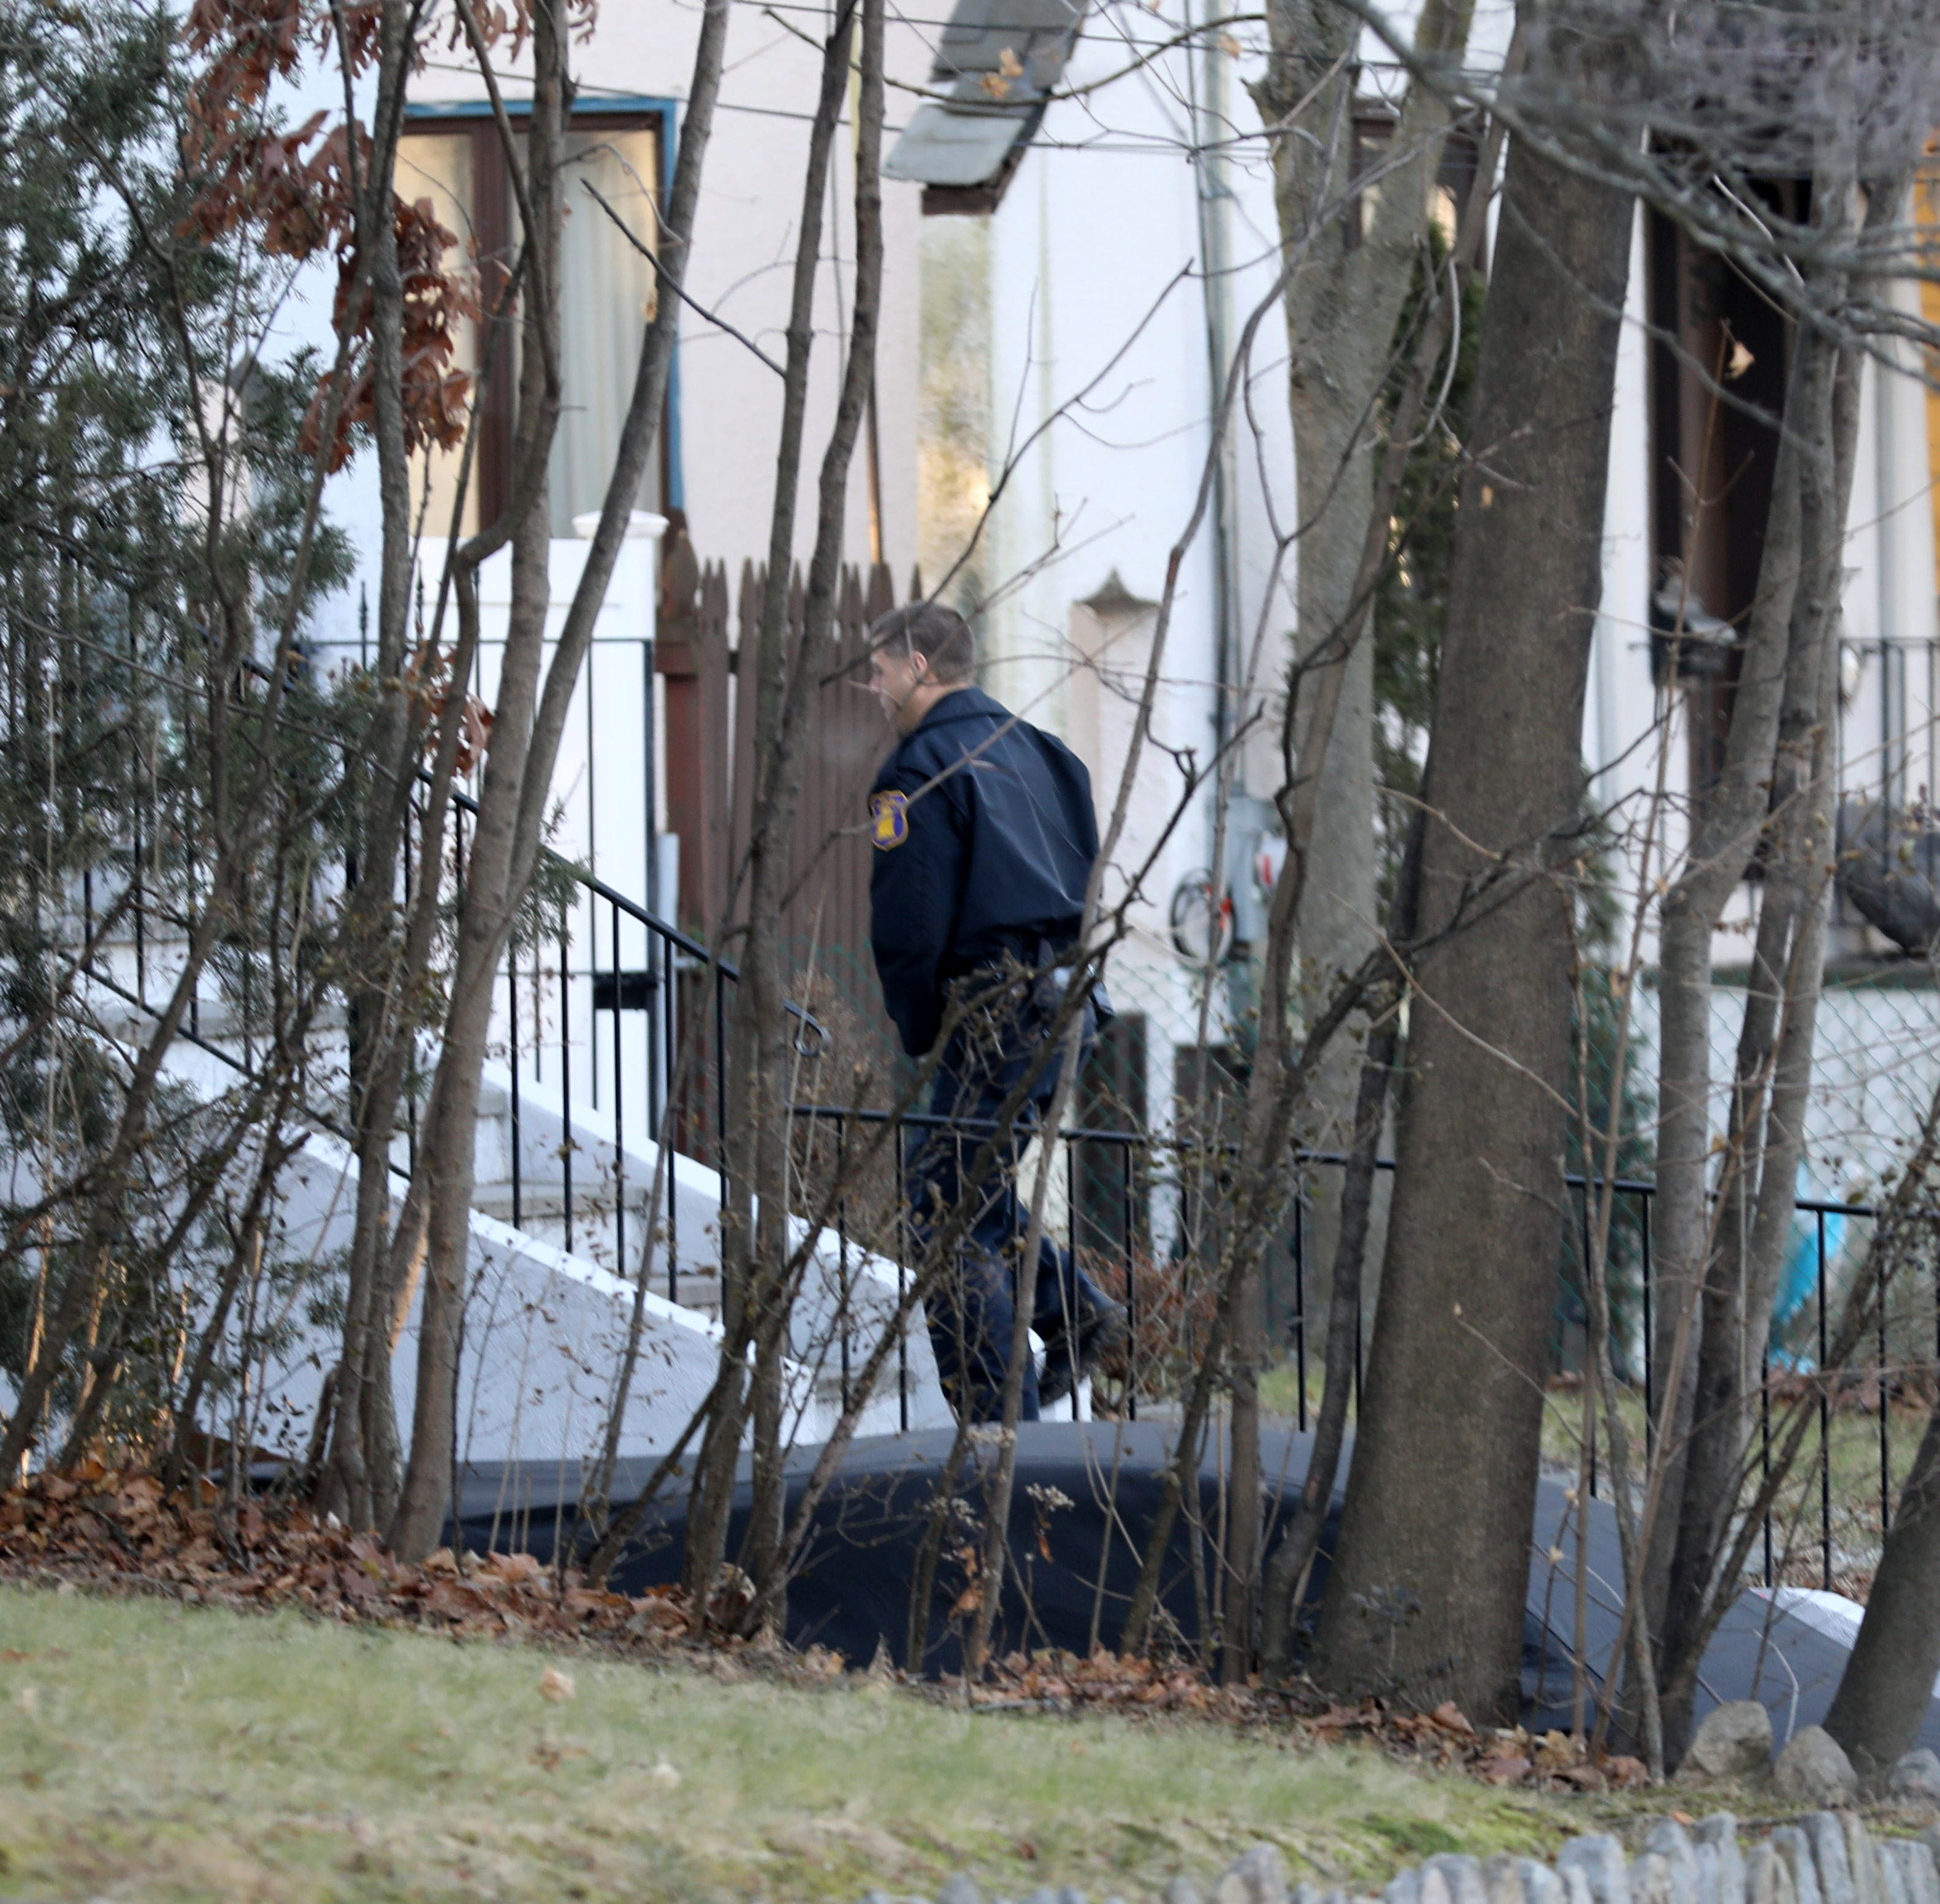 Correction officers remain hospitalized after Yonkers shooting; grief counseling offered